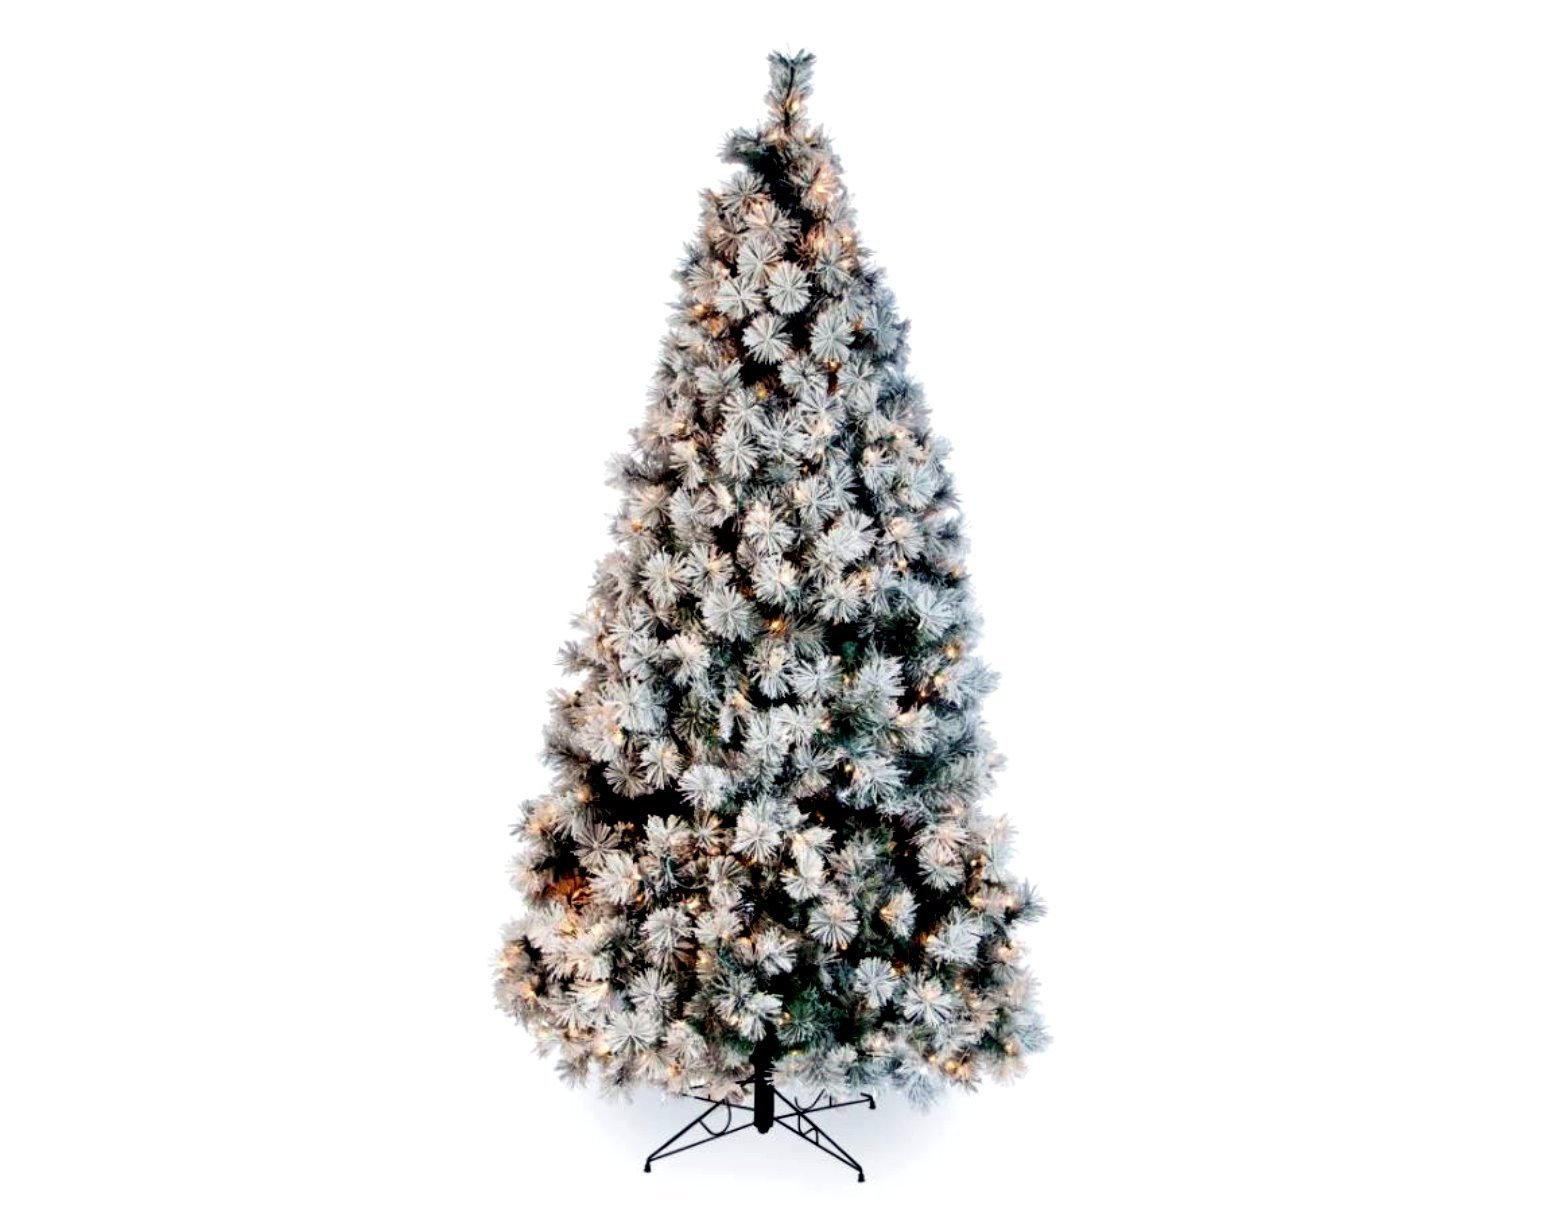 Artificial Christmas Tree. Fake Xmas Green Fir With Dense, Lush Foliage, Elegant, Realistic, Frosted Design Branches, Noble, Festively Look. Great For Indoor Holiday Season Party Decor. (9 Foot)